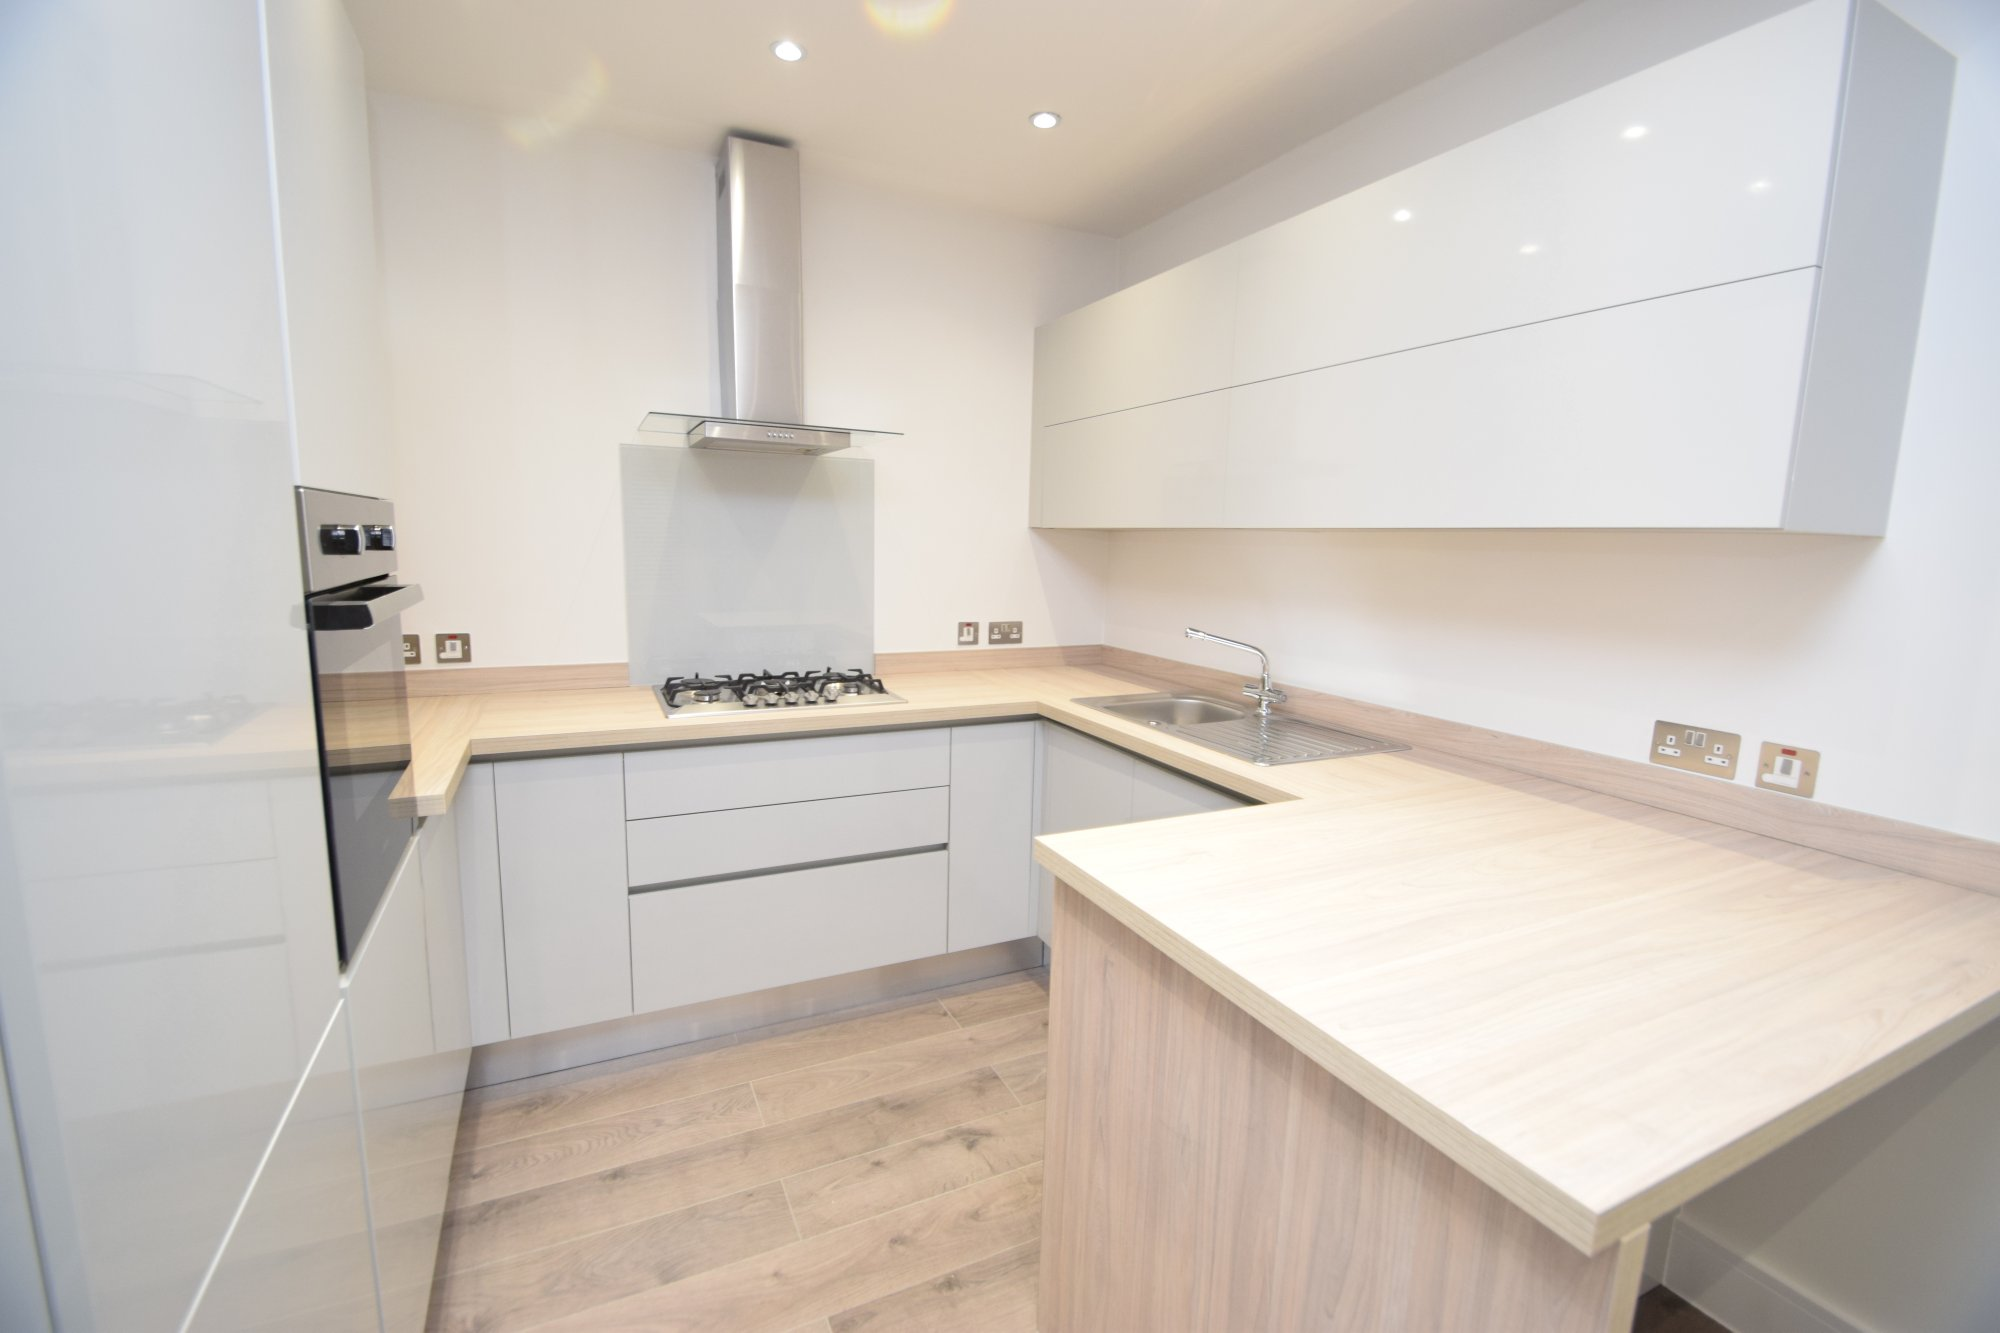 2 Bedroom Flat To Rent Woodside Park Road North Finchley